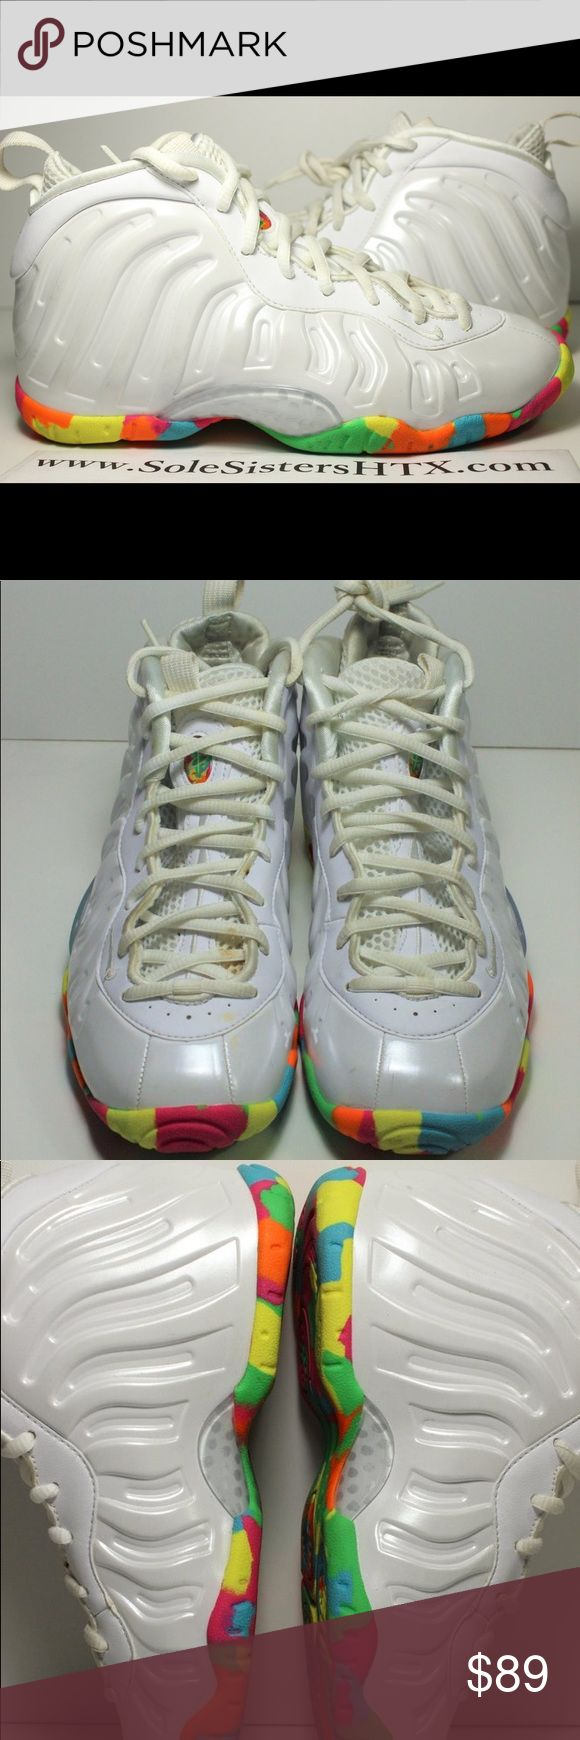 "Nike Air Little One Posite Fruity Pebble SZ 4Y 100% Authentic Nike Air Little One Posite ""Fruity Pebble""  SZ 4Y  USED  w/ OG BOX  (USED , MIGHT HAVE toe box creasing, dirt on the bottom/around the shoes, needs cleaning, scuffs around the shoes, stains around the shoes, etc) Nike Shoes Sneakers"